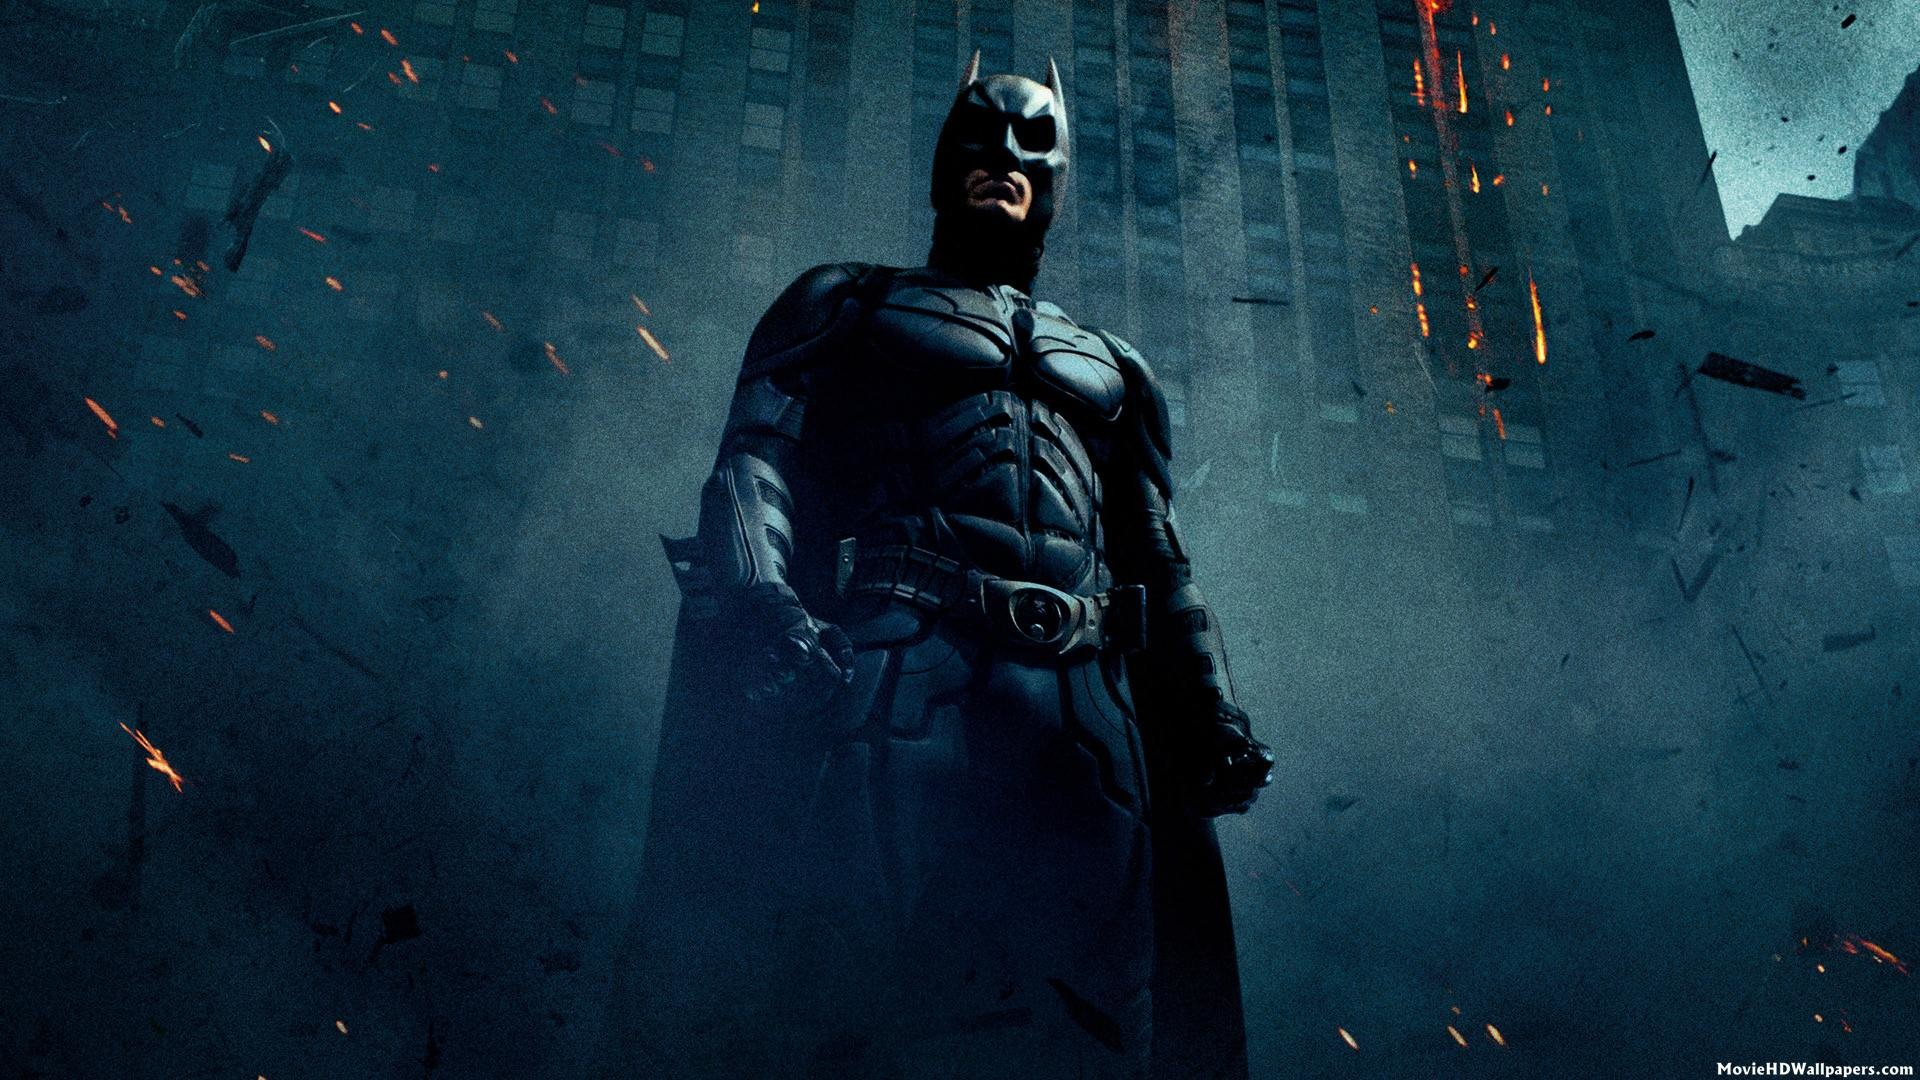 1920x1080 The Dark Knight HD Wallpapers Backgrounds Wallpaper 1920×1080 Dark Knight  Wallpaper (38 Wallpapers